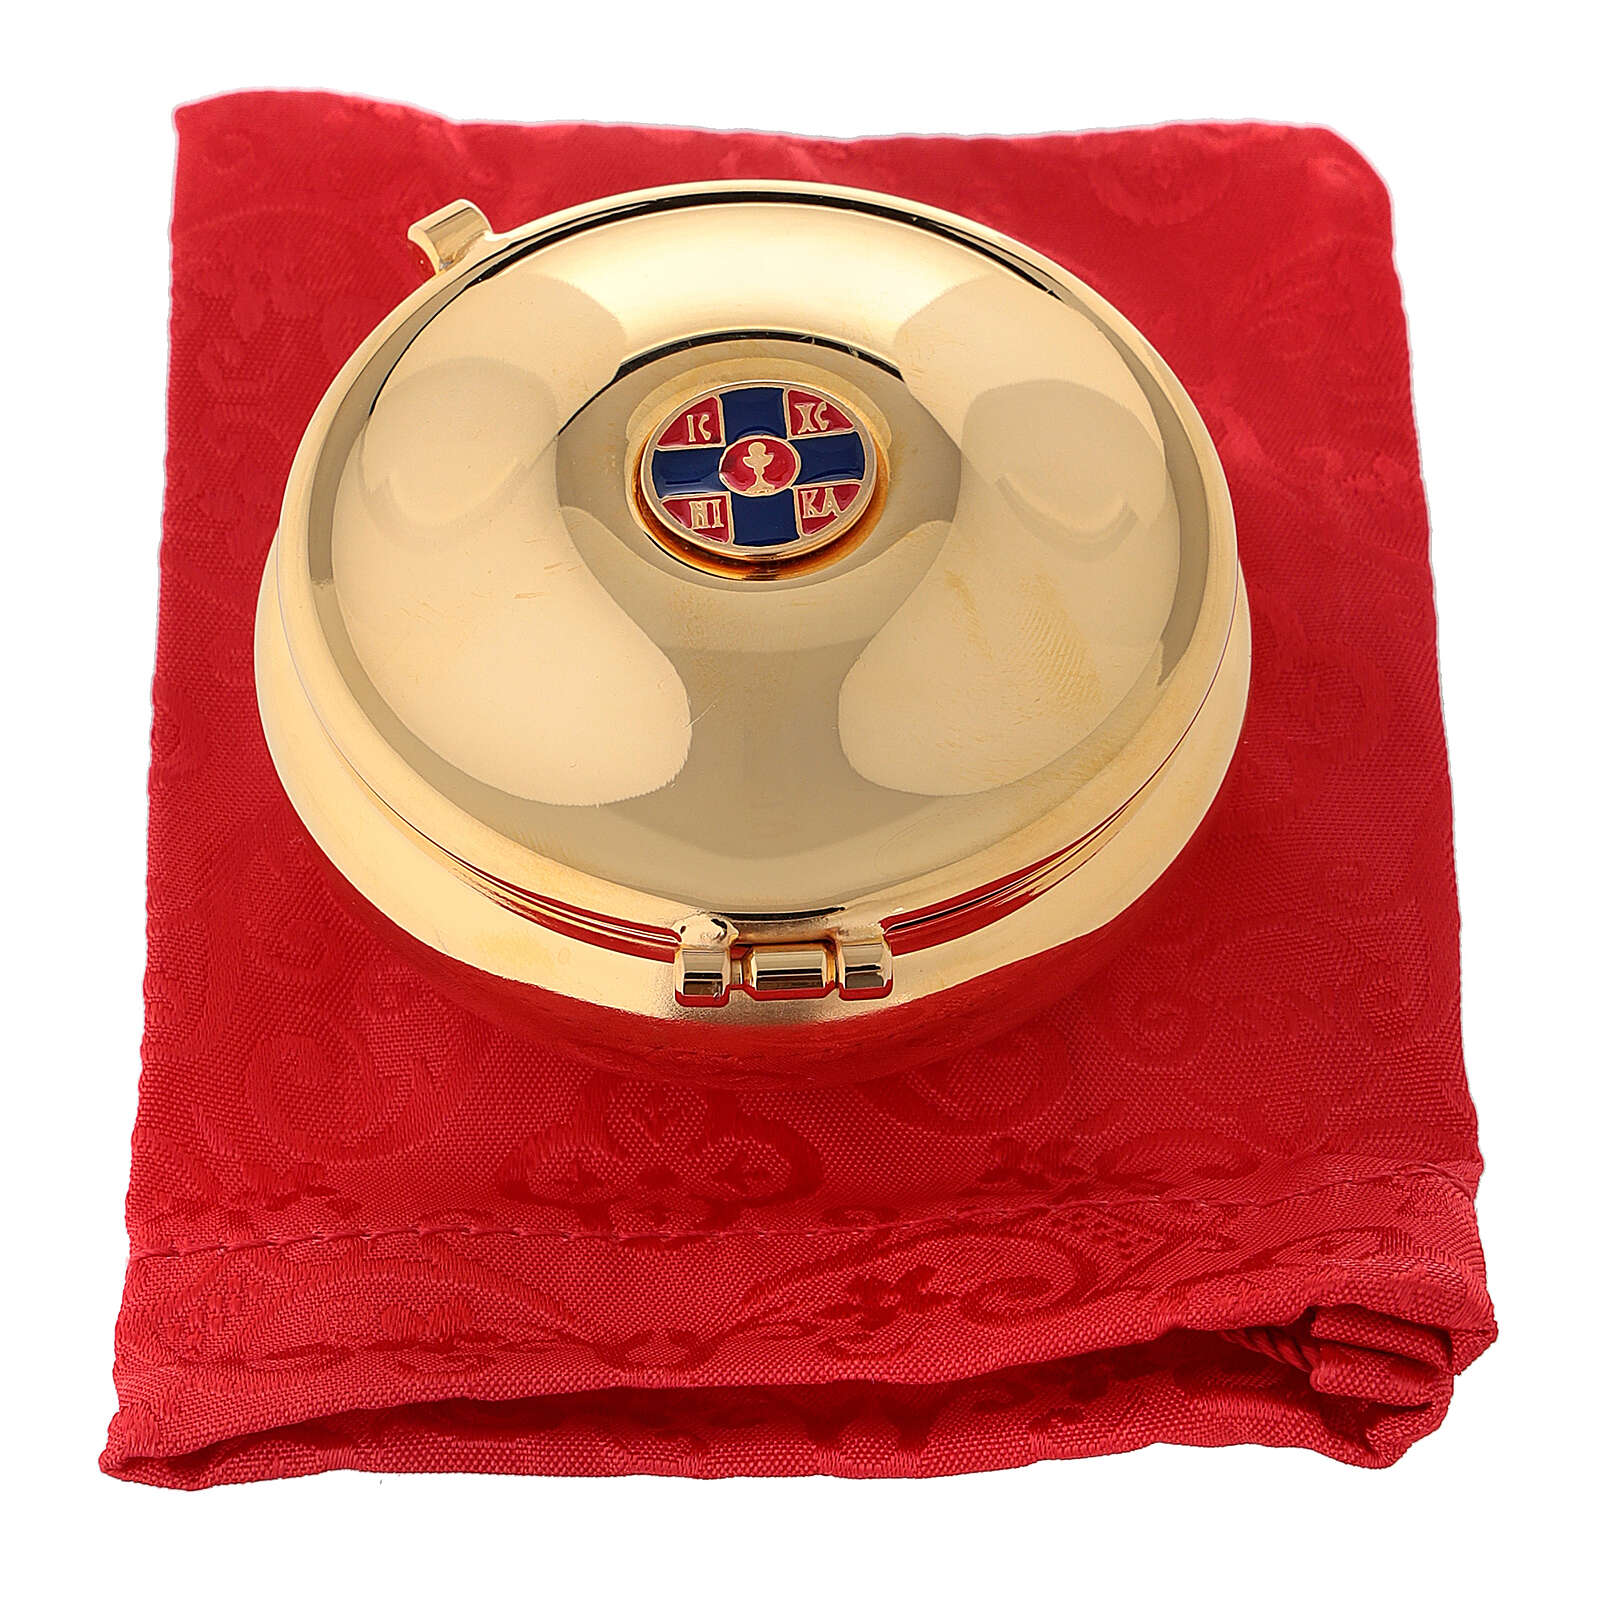 Enamelled gold plated pyx with cross and red burse 3